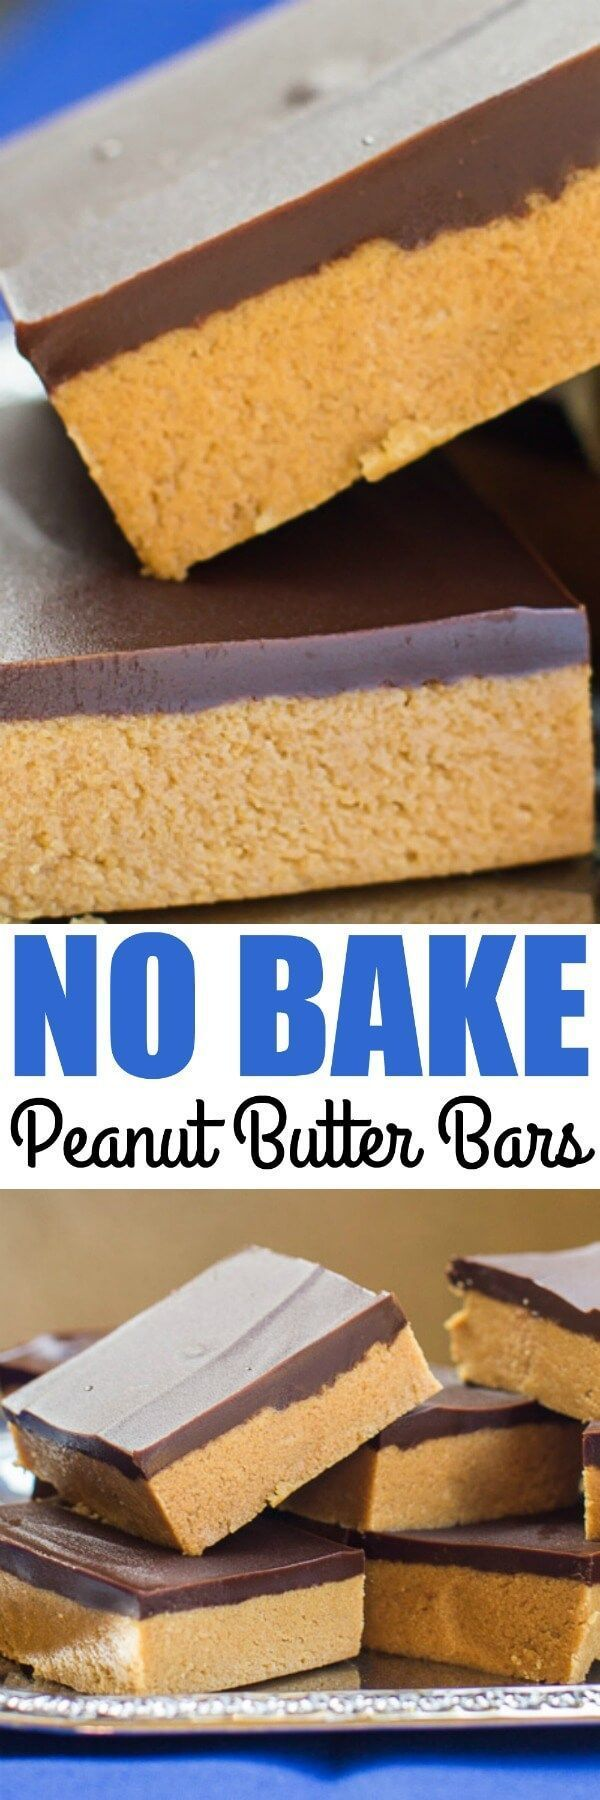 No Bake Peanut Butter Bars take only 5 ingredients